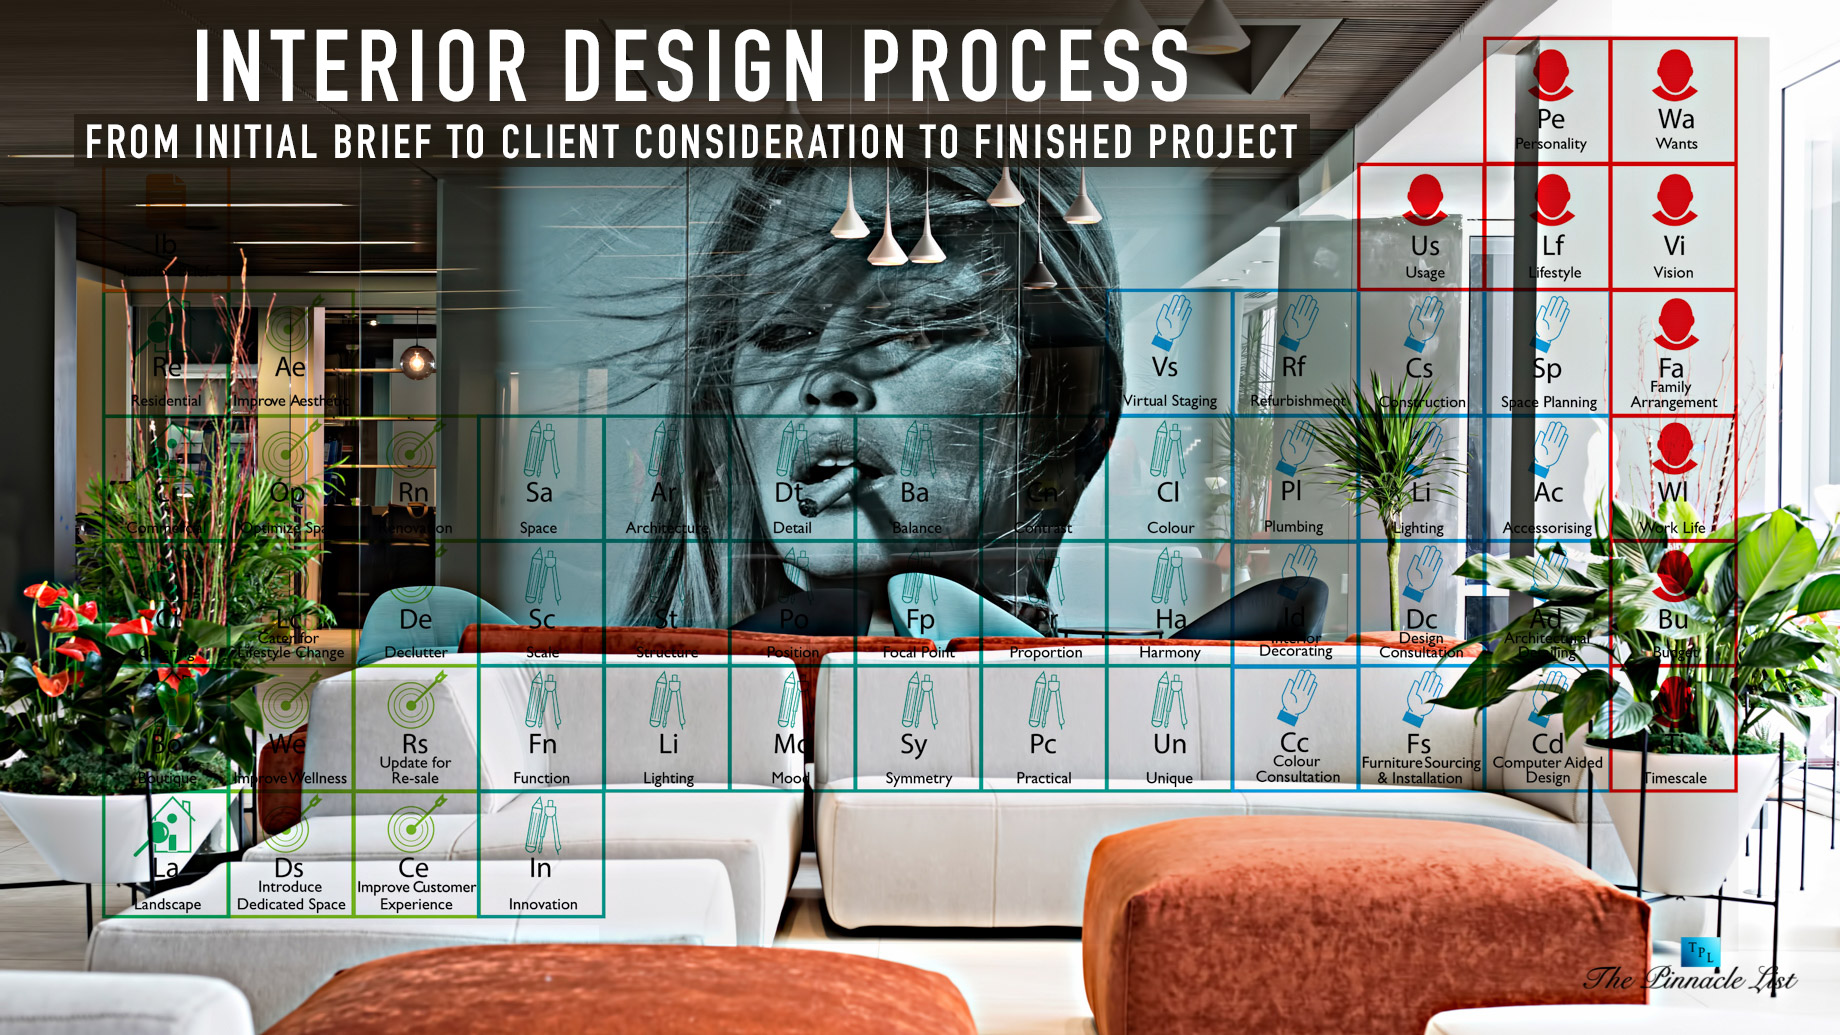 Interior Design Process - From Initial Brief to Client Consideration to Finished Project